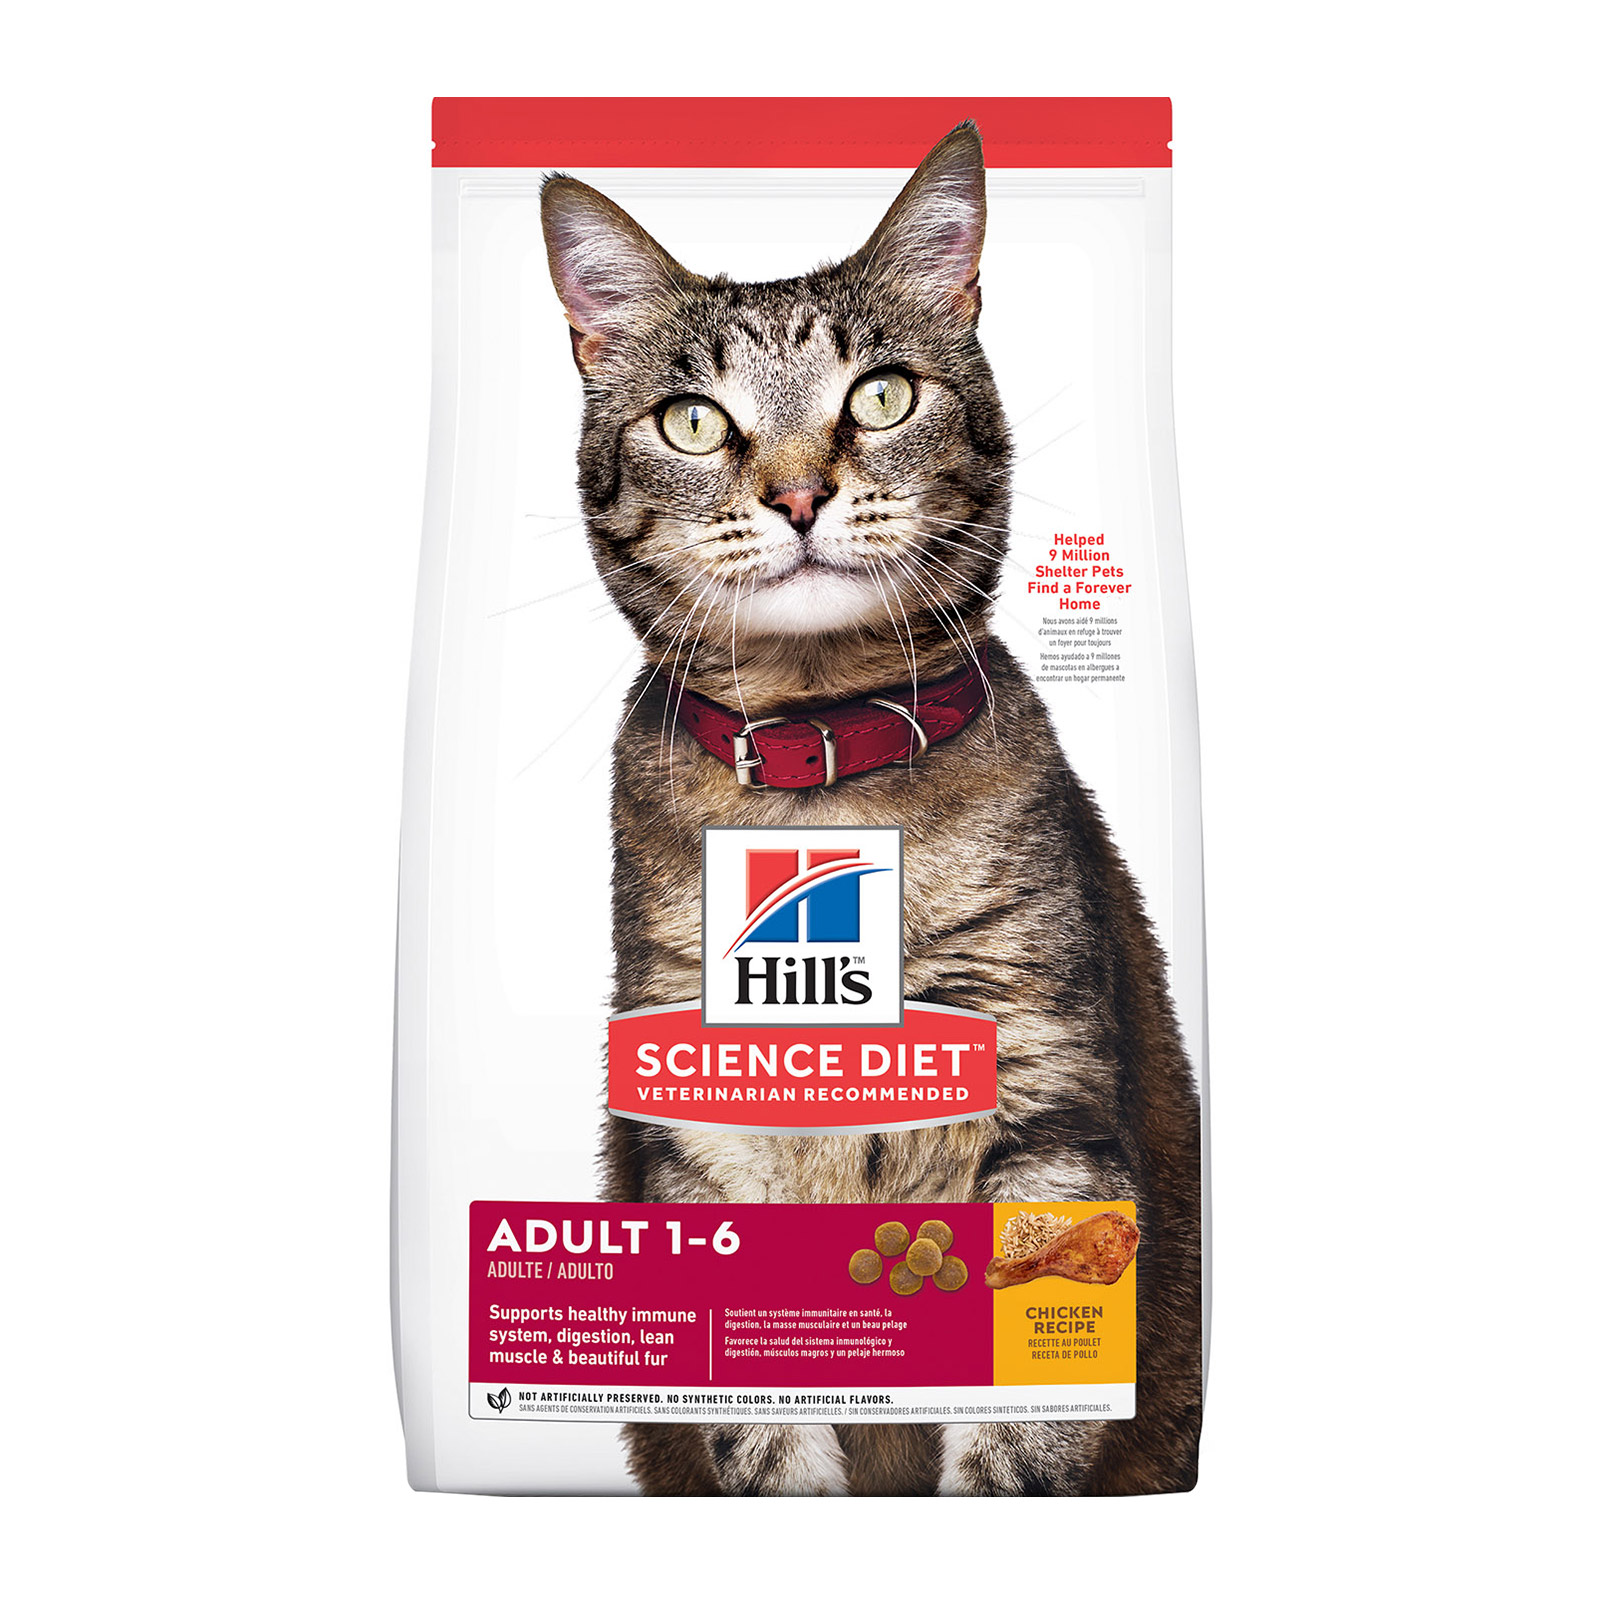 Hill's Science Diet Adult Chicken Dry Cat Food